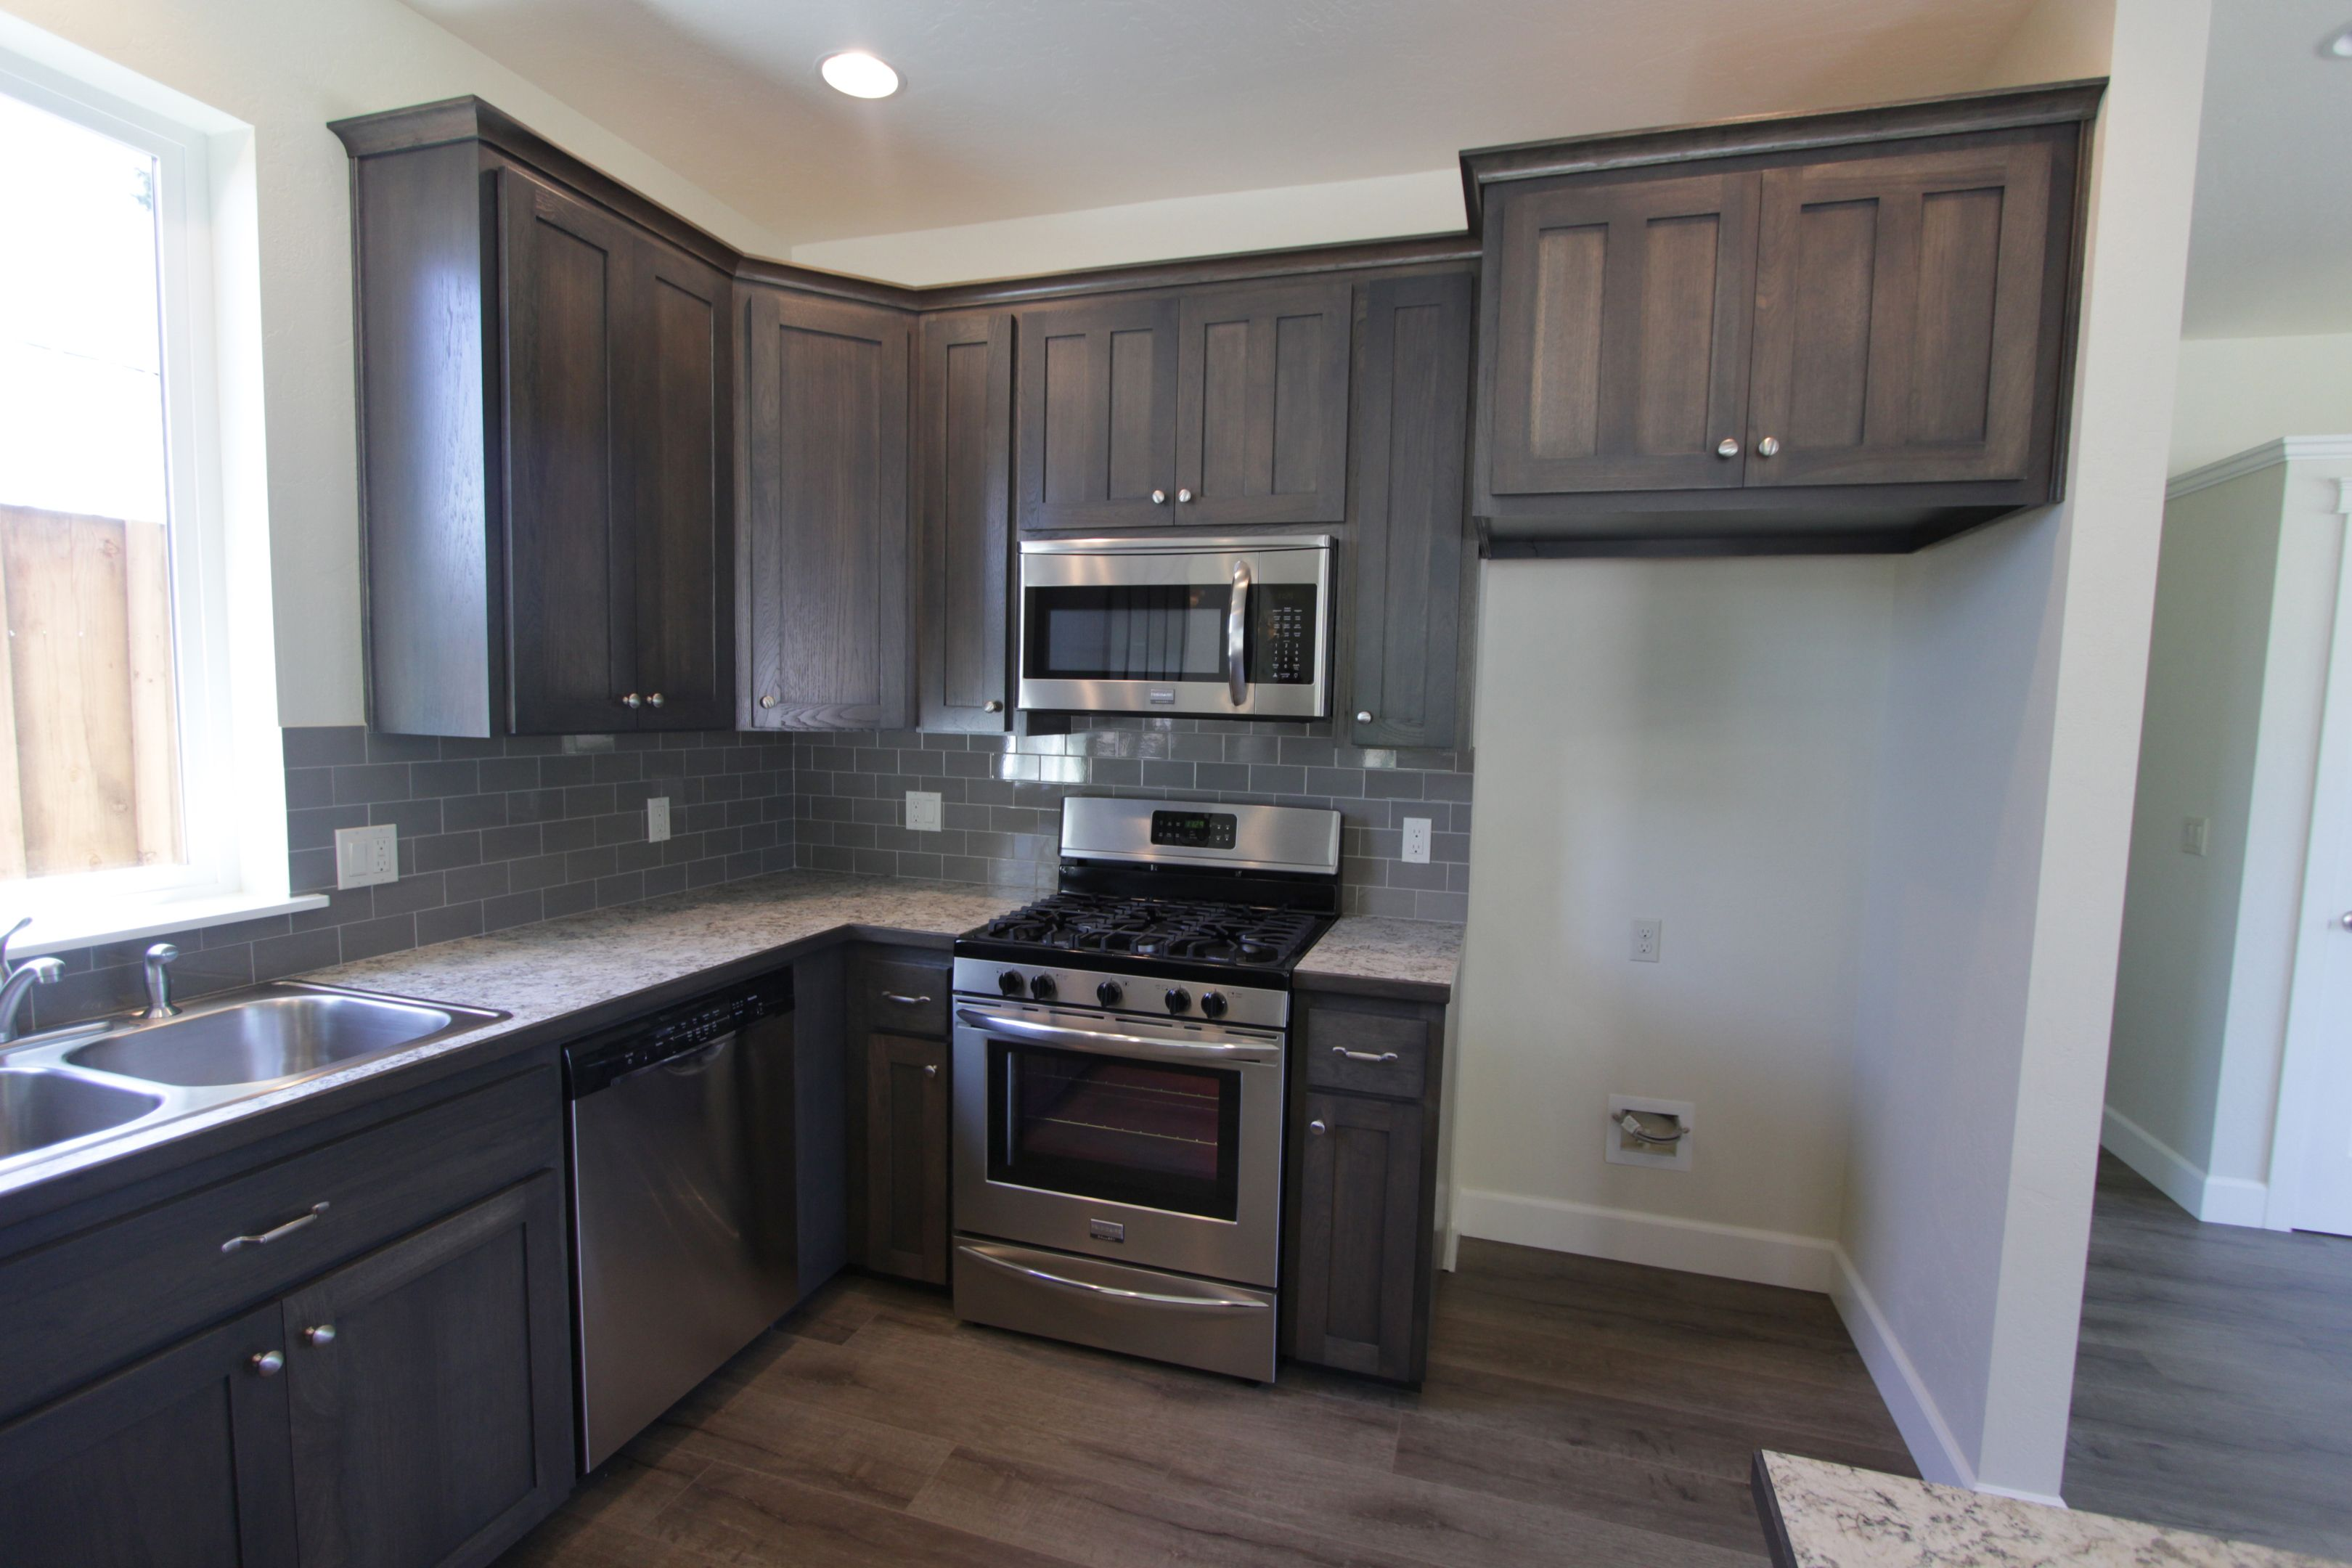 Kitchen Shaker Style Hickory Grey Color Recessed Panel Split Panel 9 Crown Standard Overlay Kitchen Shaker Style Custom Cabinets